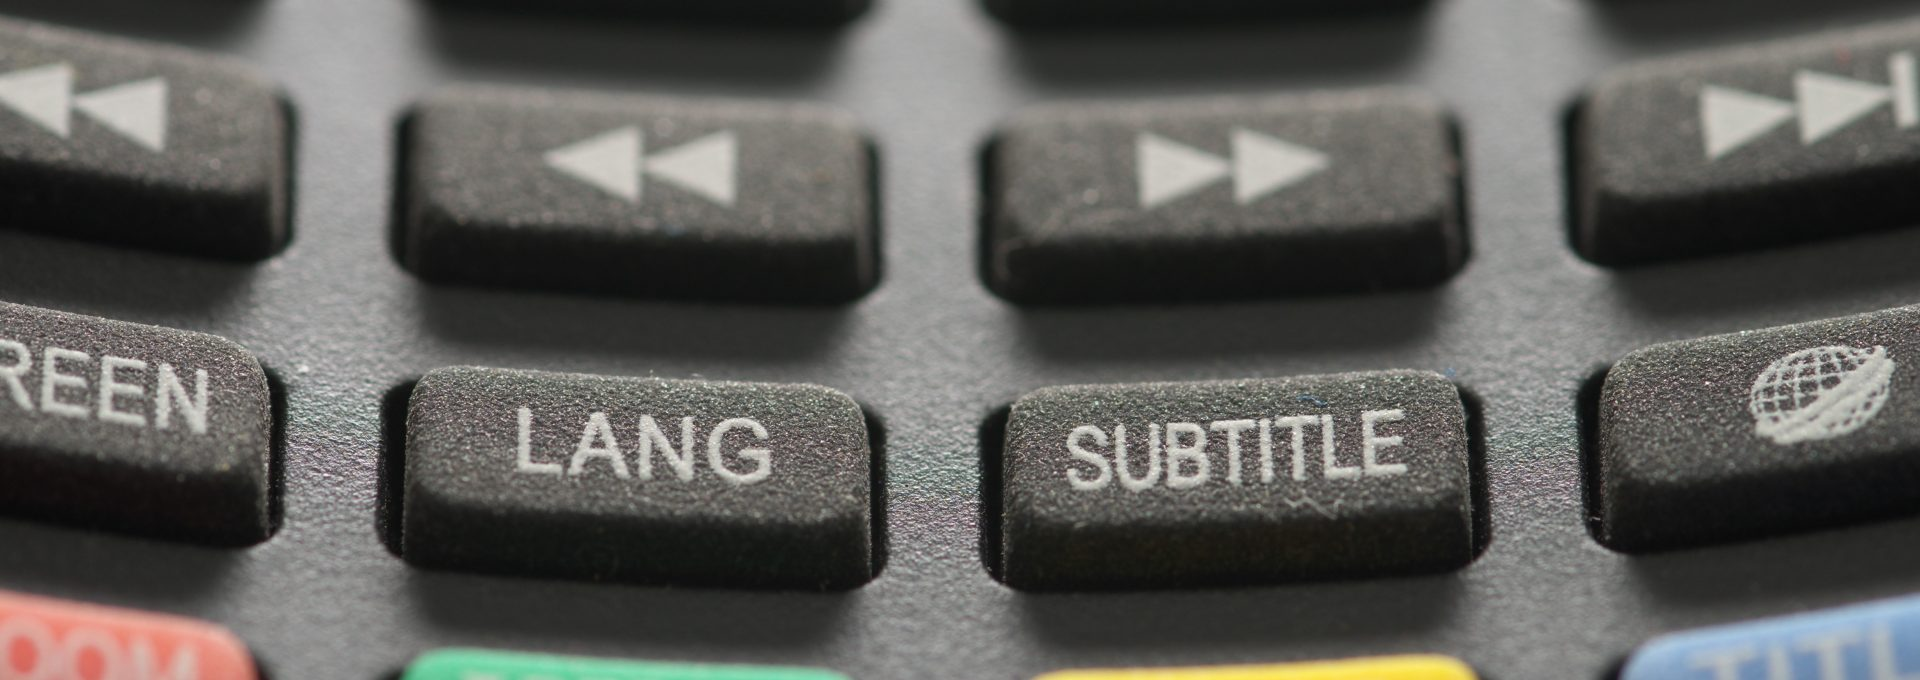 Multilingual Subtitling